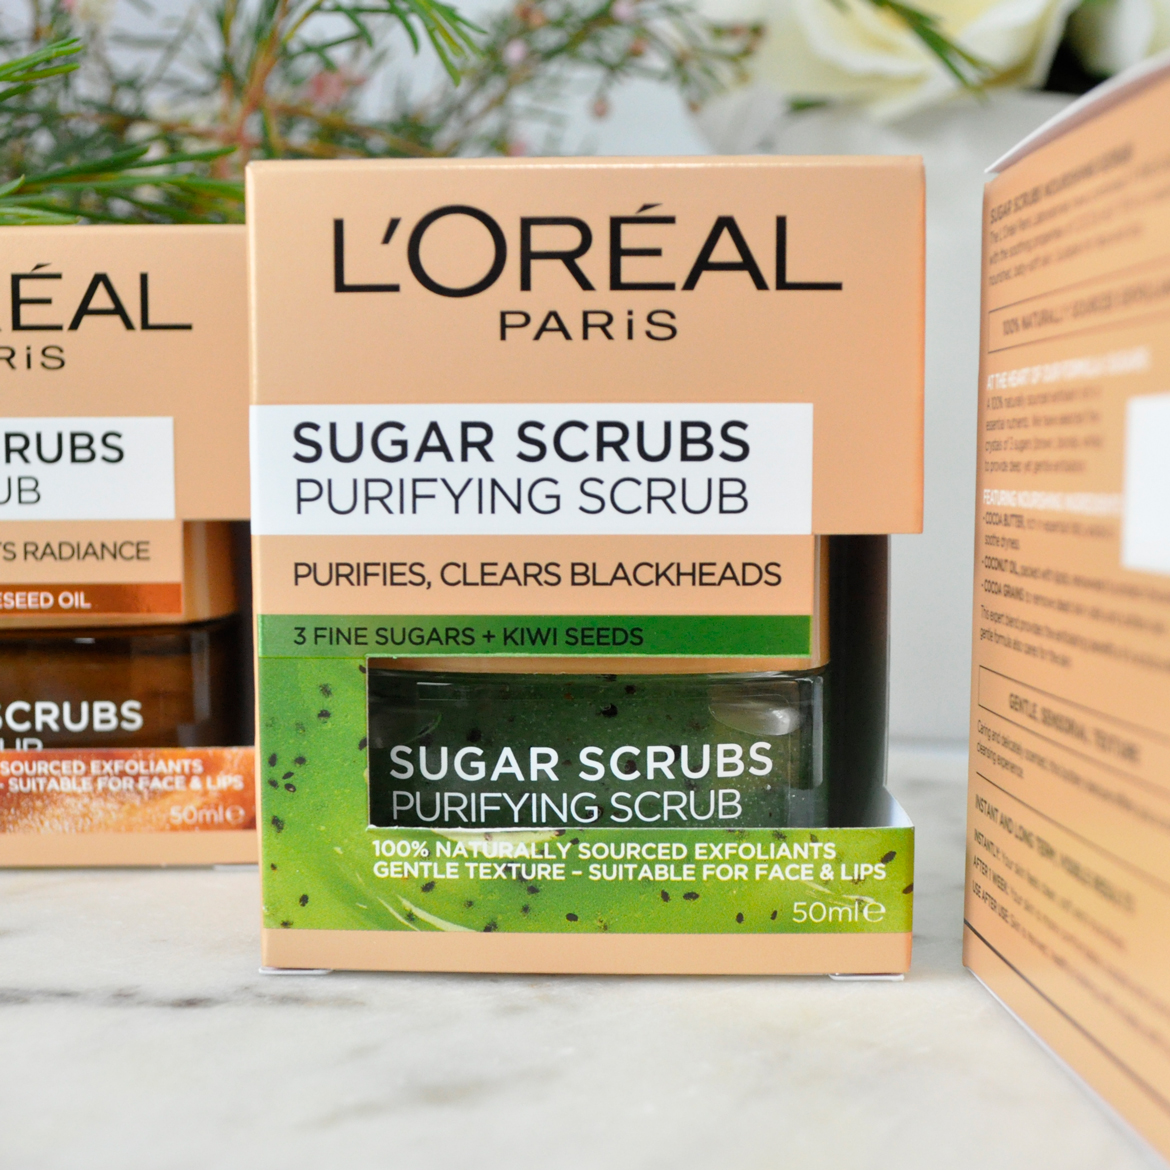 L'Oréal Paris Sugar Scrubs Purifying Scrub